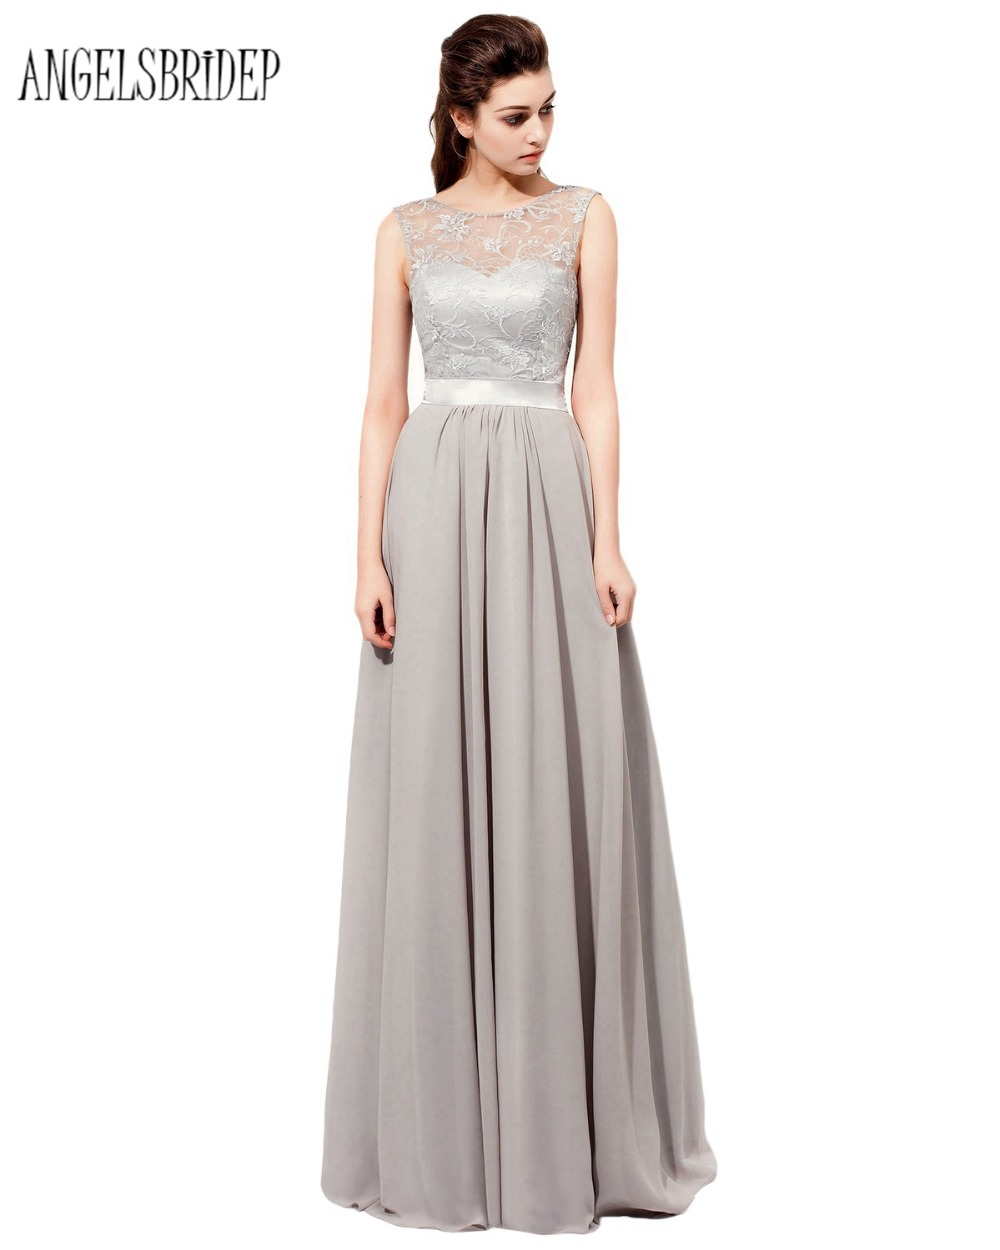 Floor Length Silver Bridesmaid Dresses Featuring Sheer Bateau Neck Vestido De Festa Casamento Chiffon Party Dress Formal Gown In From